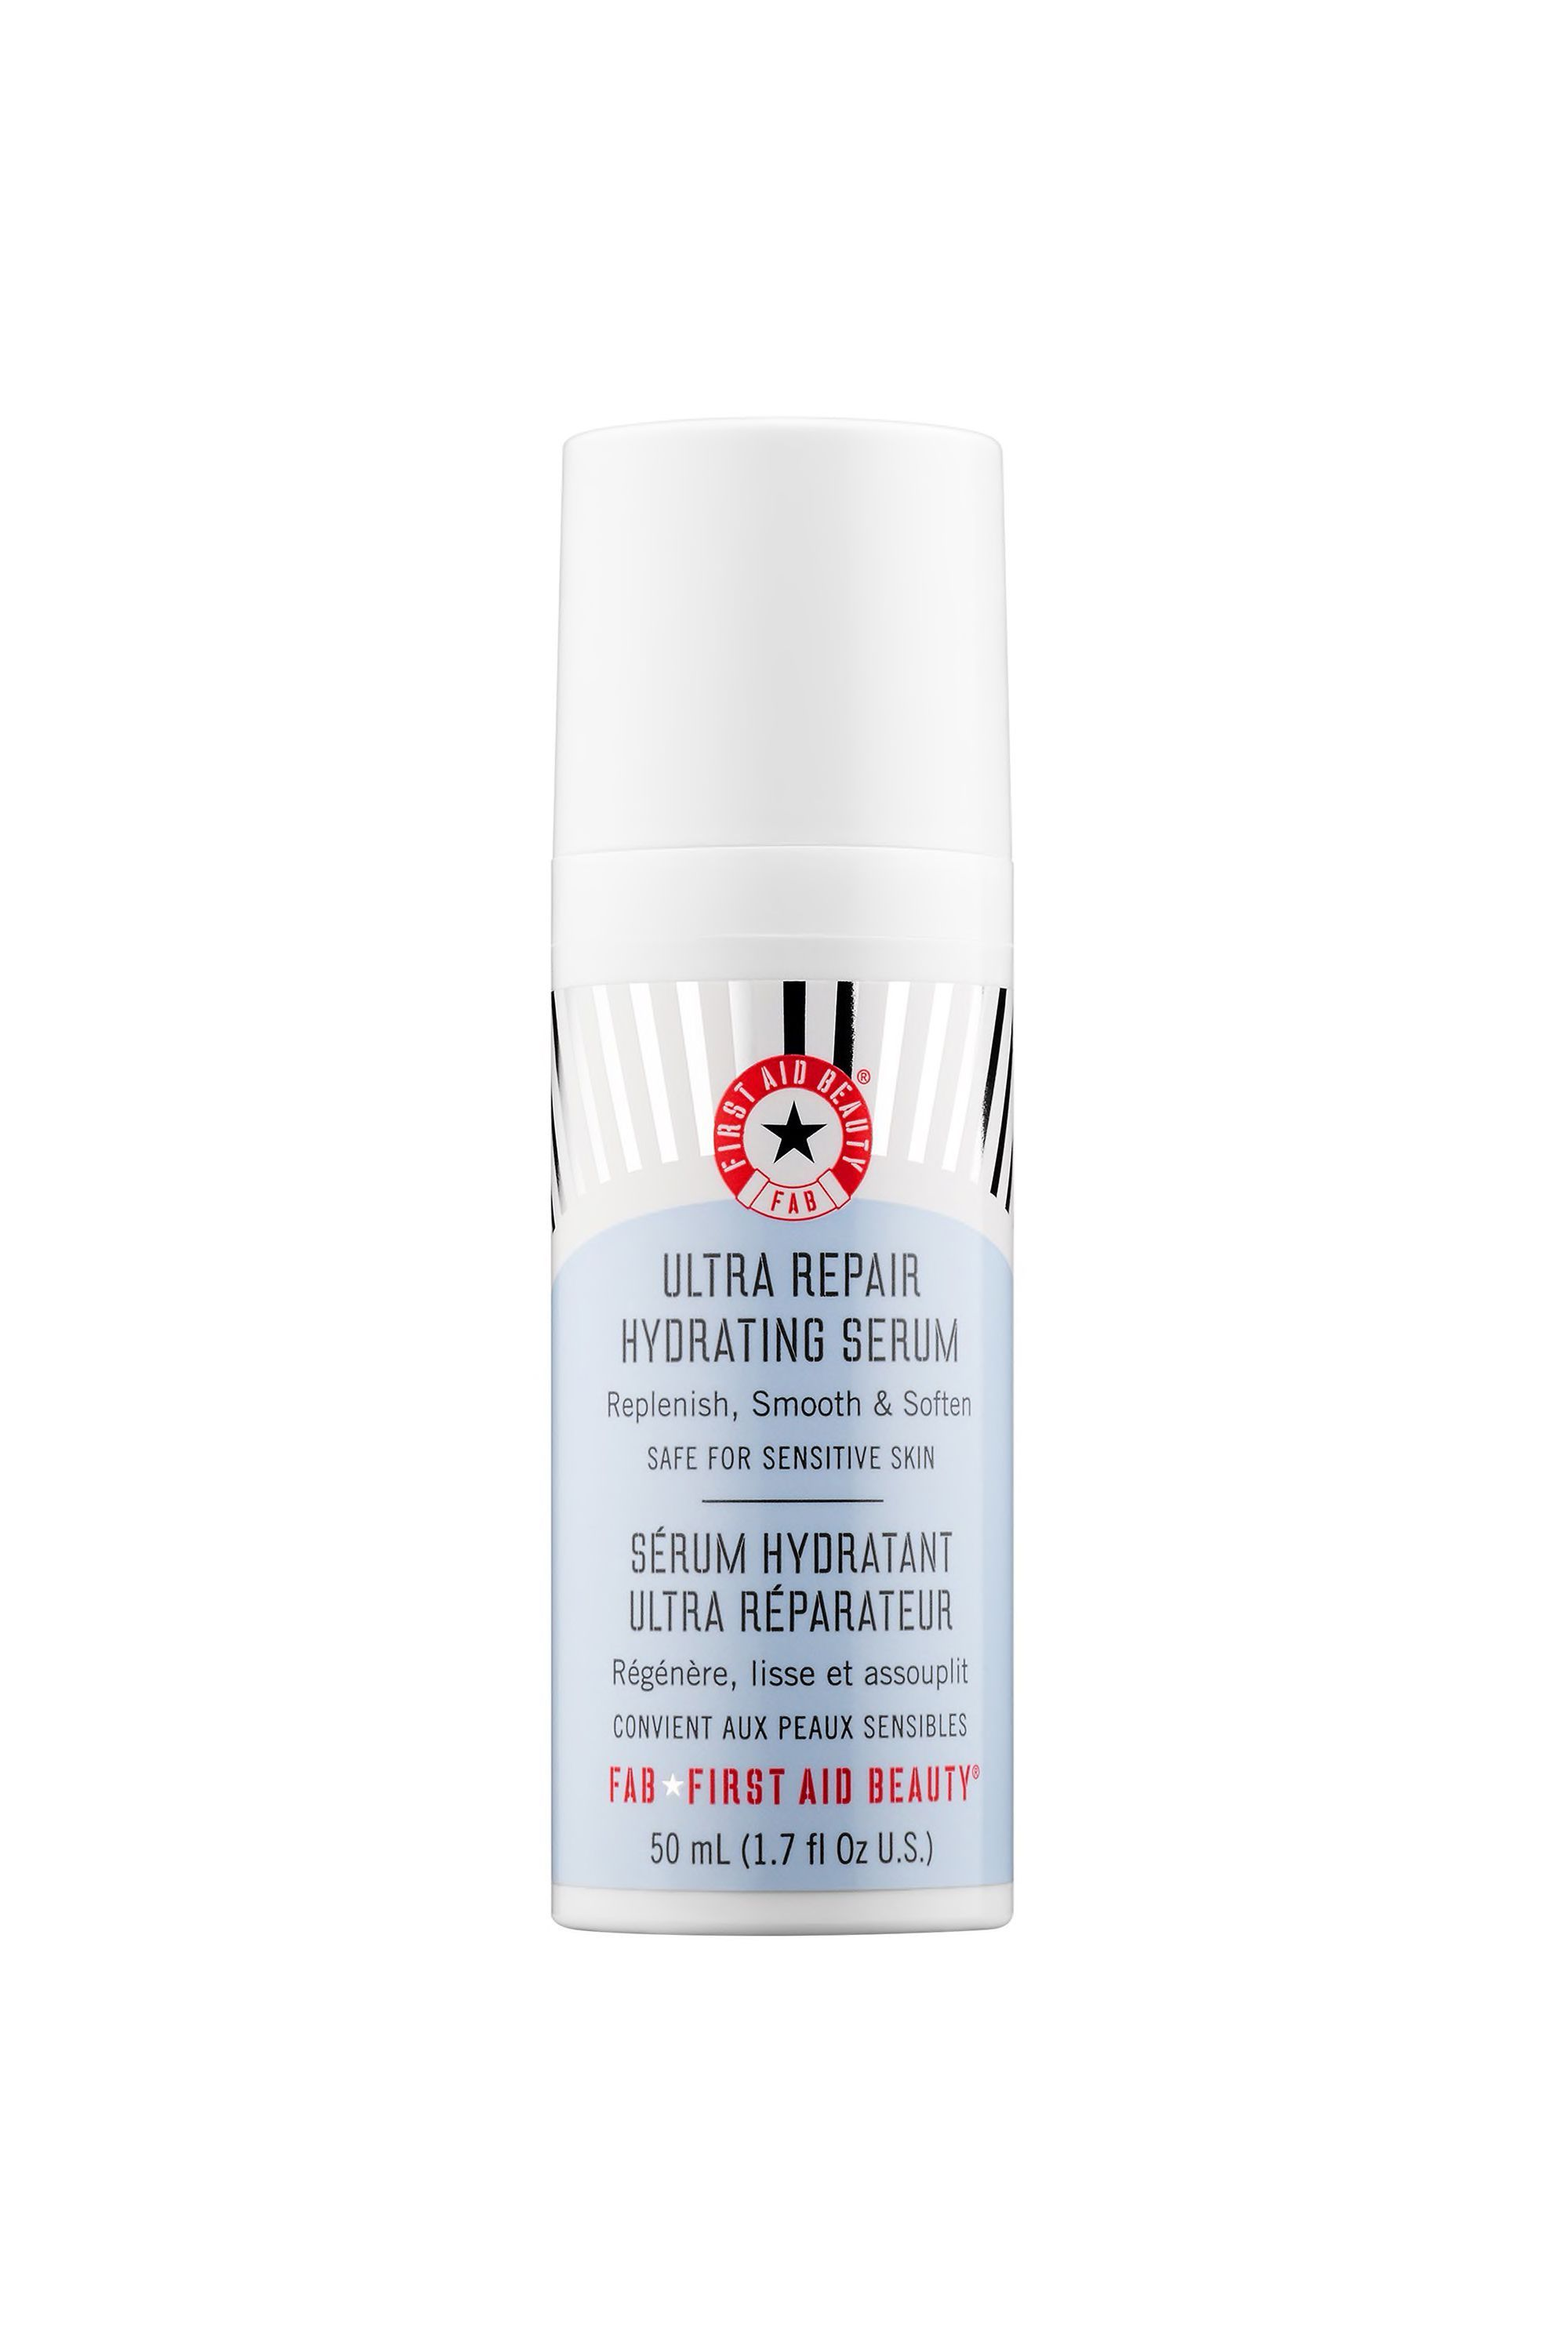 The Fixer Ultra Repair Hydrating Serum First Aid Beauty dermstore.com $28.80 SHOP NOW If you're looking for a good hydrating serum without retinol or lactic/glycolic acid (for the sensitive-skinned among us), this is the formula for you. The lightweight product sinks into your complexion to provide an immediate burst of hydration.